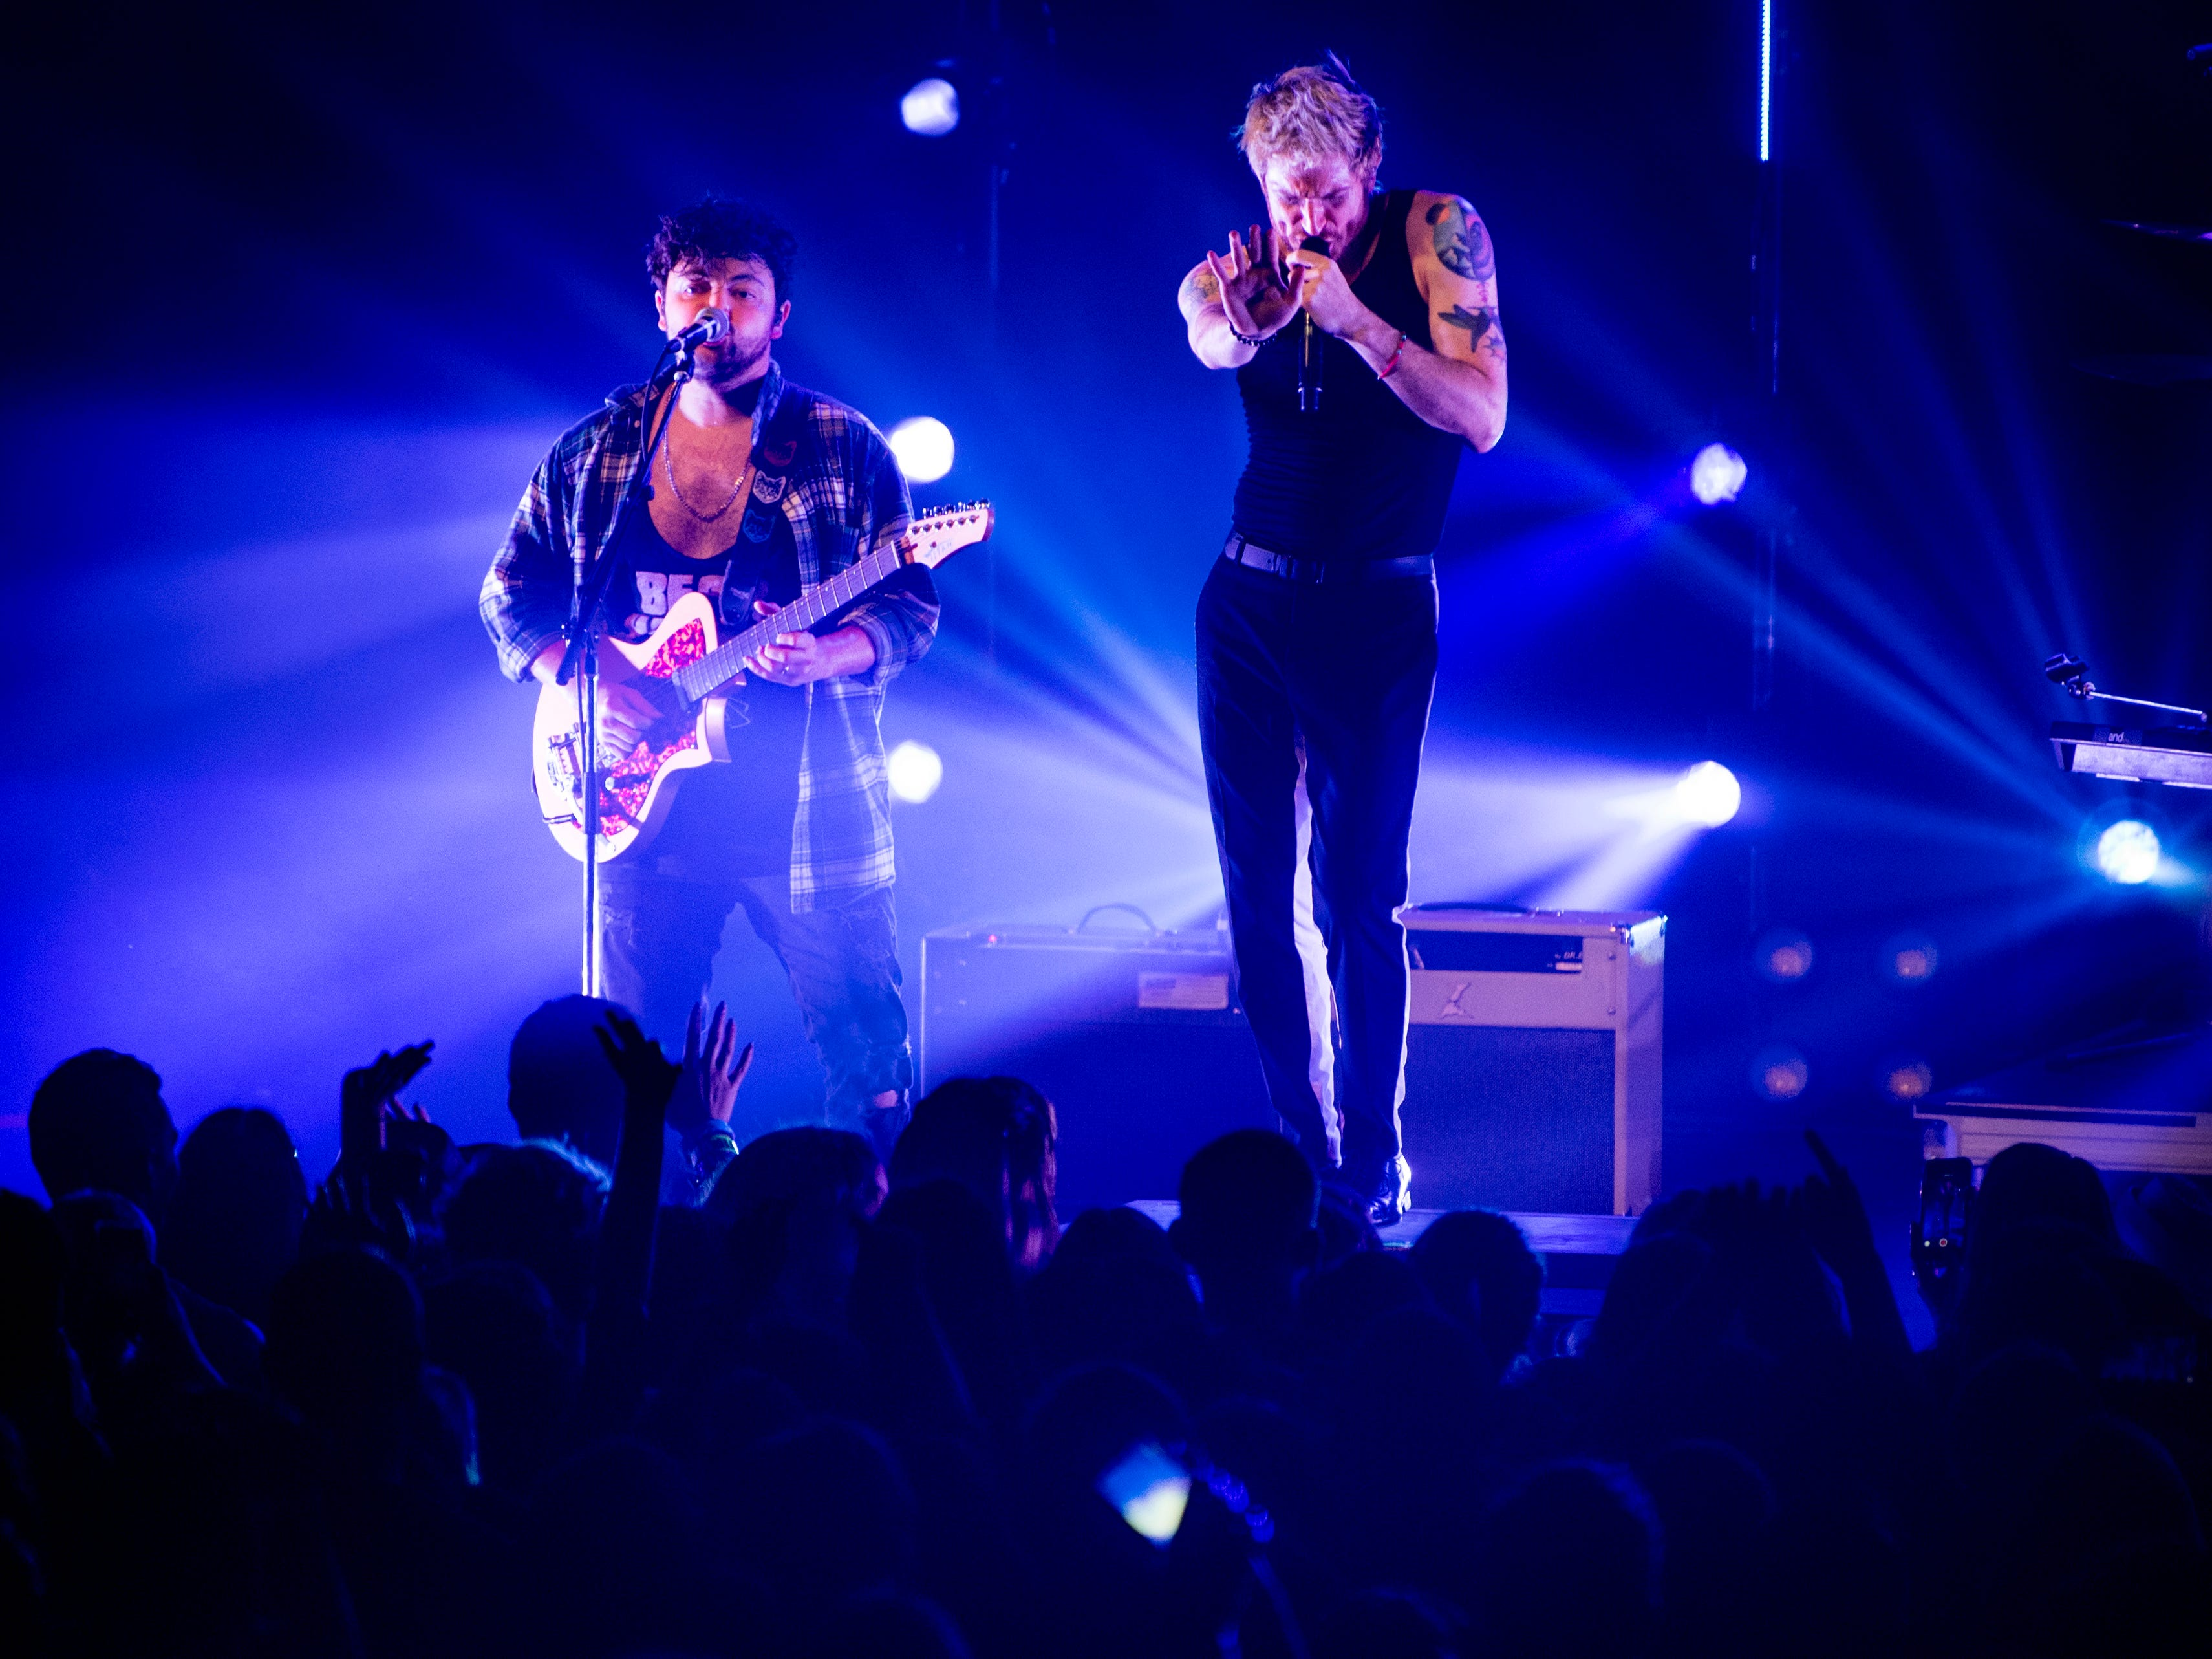 Walk the Moon performs at The Mill & Mine in Knoxville on February 17, 2019.